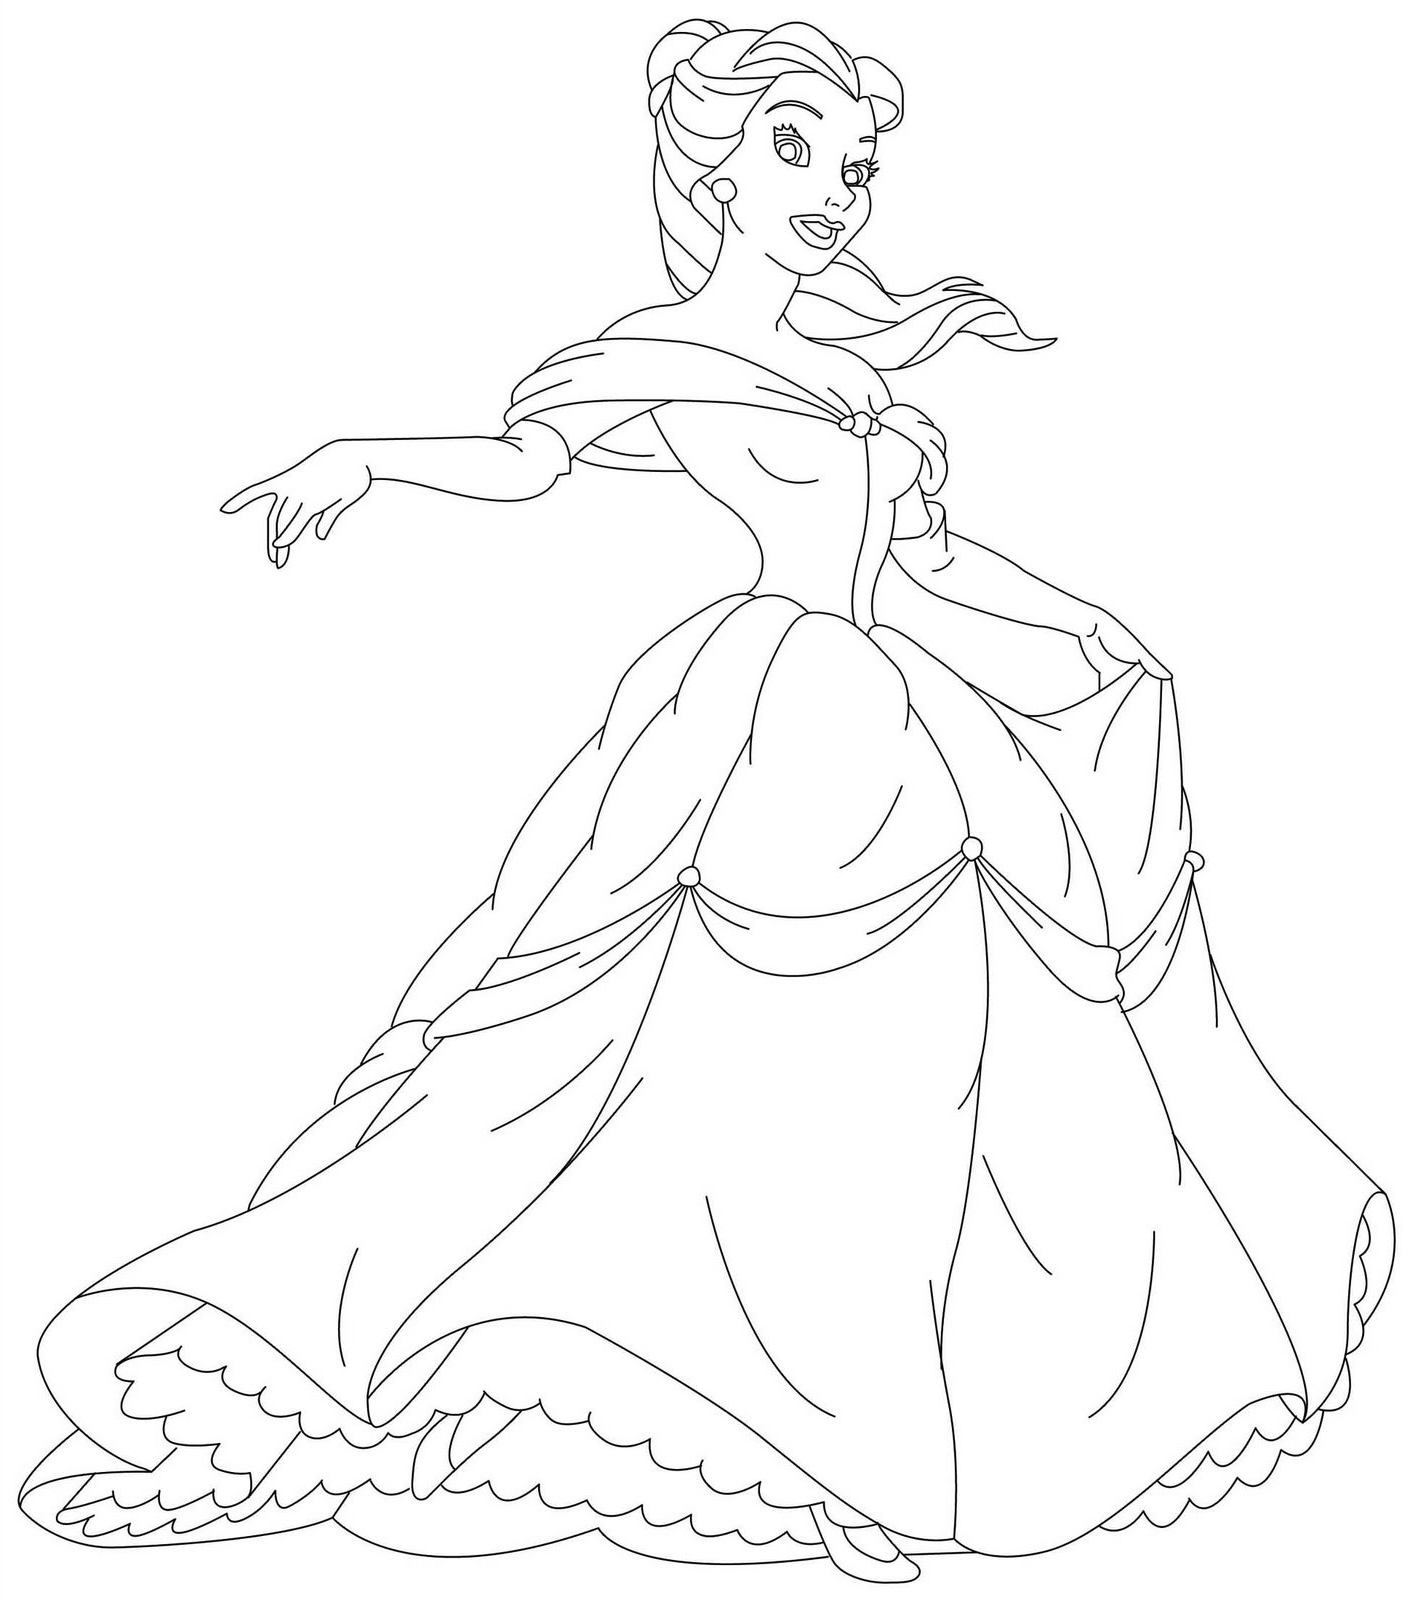 Disney Princesses Printable Coloring Pages Disney Princesses Coloring Page